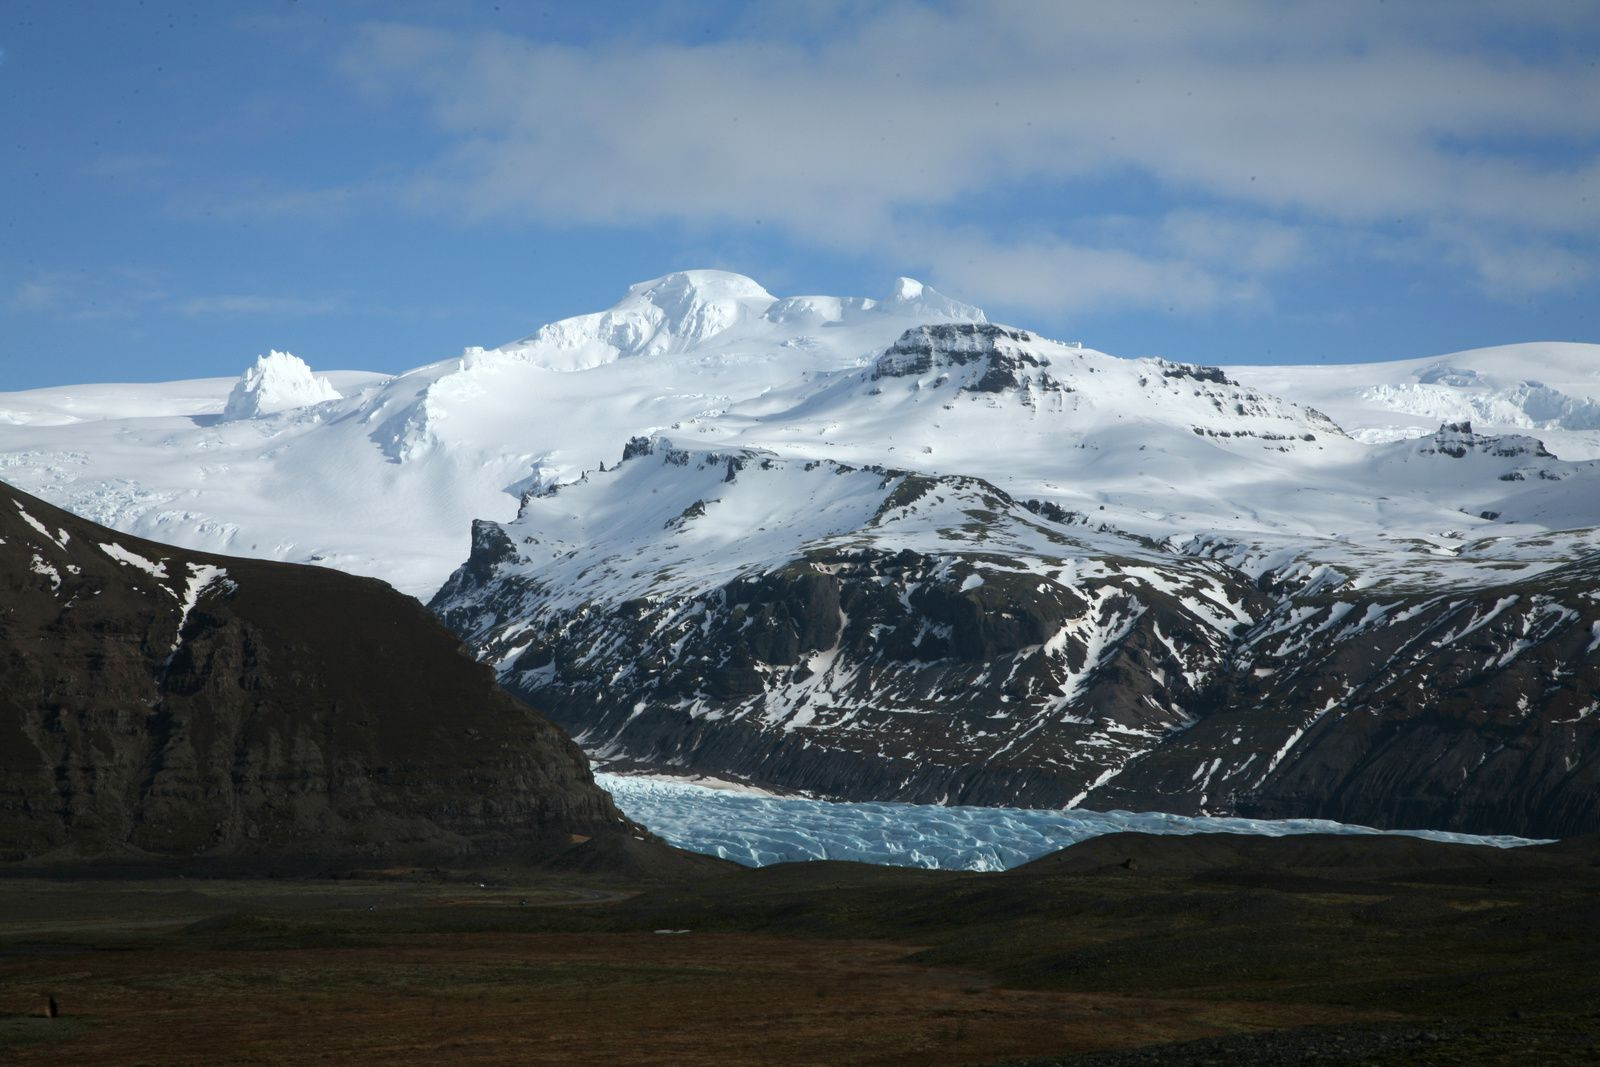 Öræfajökull, and its highest point, Hvannadalshnjúkur - photo © 2015 Bernard Duyck